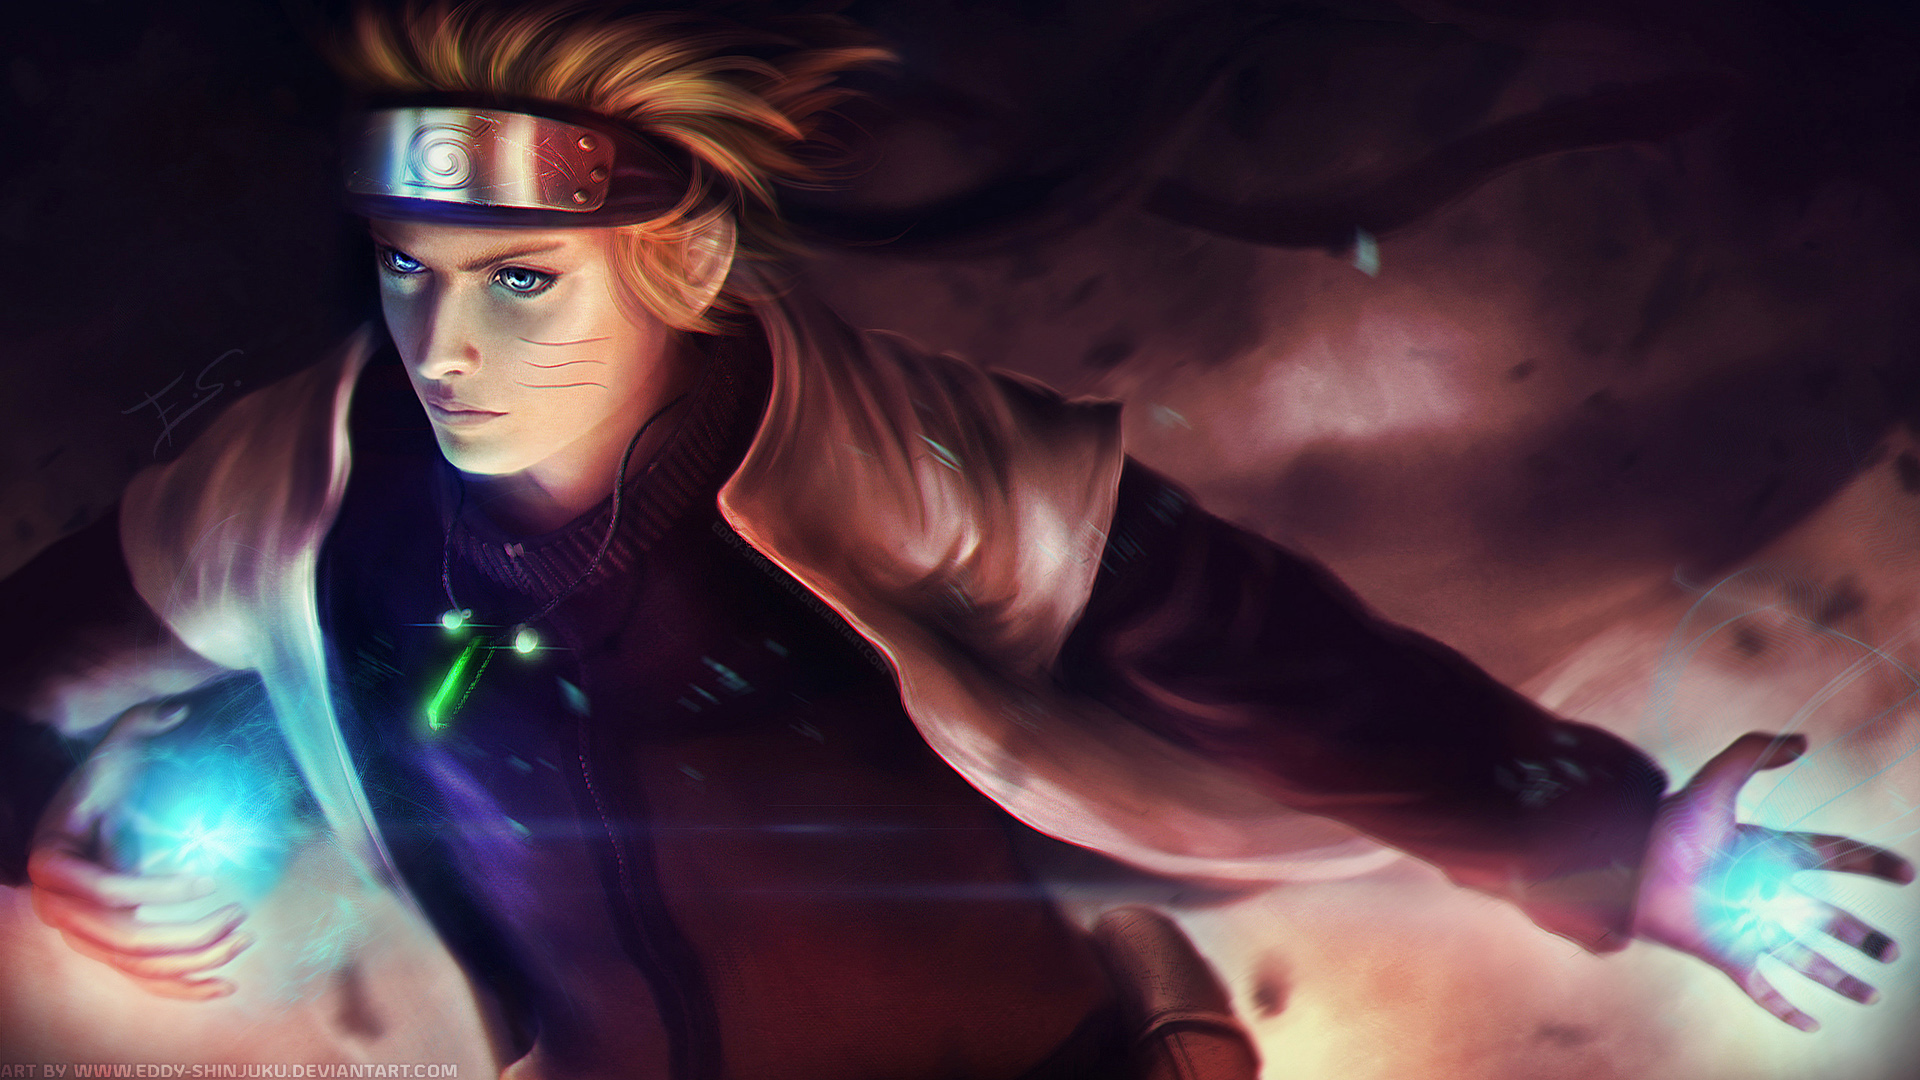 Abyss Within - Naruto Shippuden by Eddy-Shinjuku